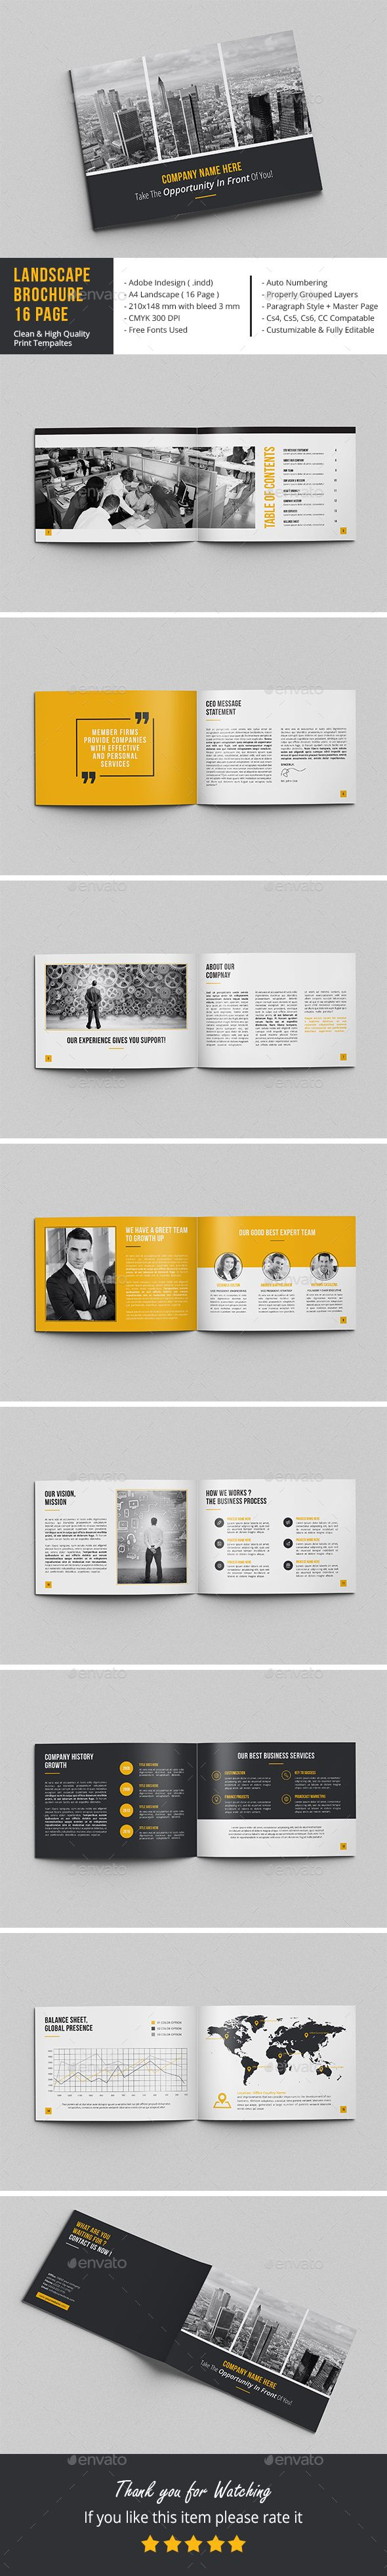 Best Brochure Template Ideas On Pinterest Brochure Design - Brochure booklet templates